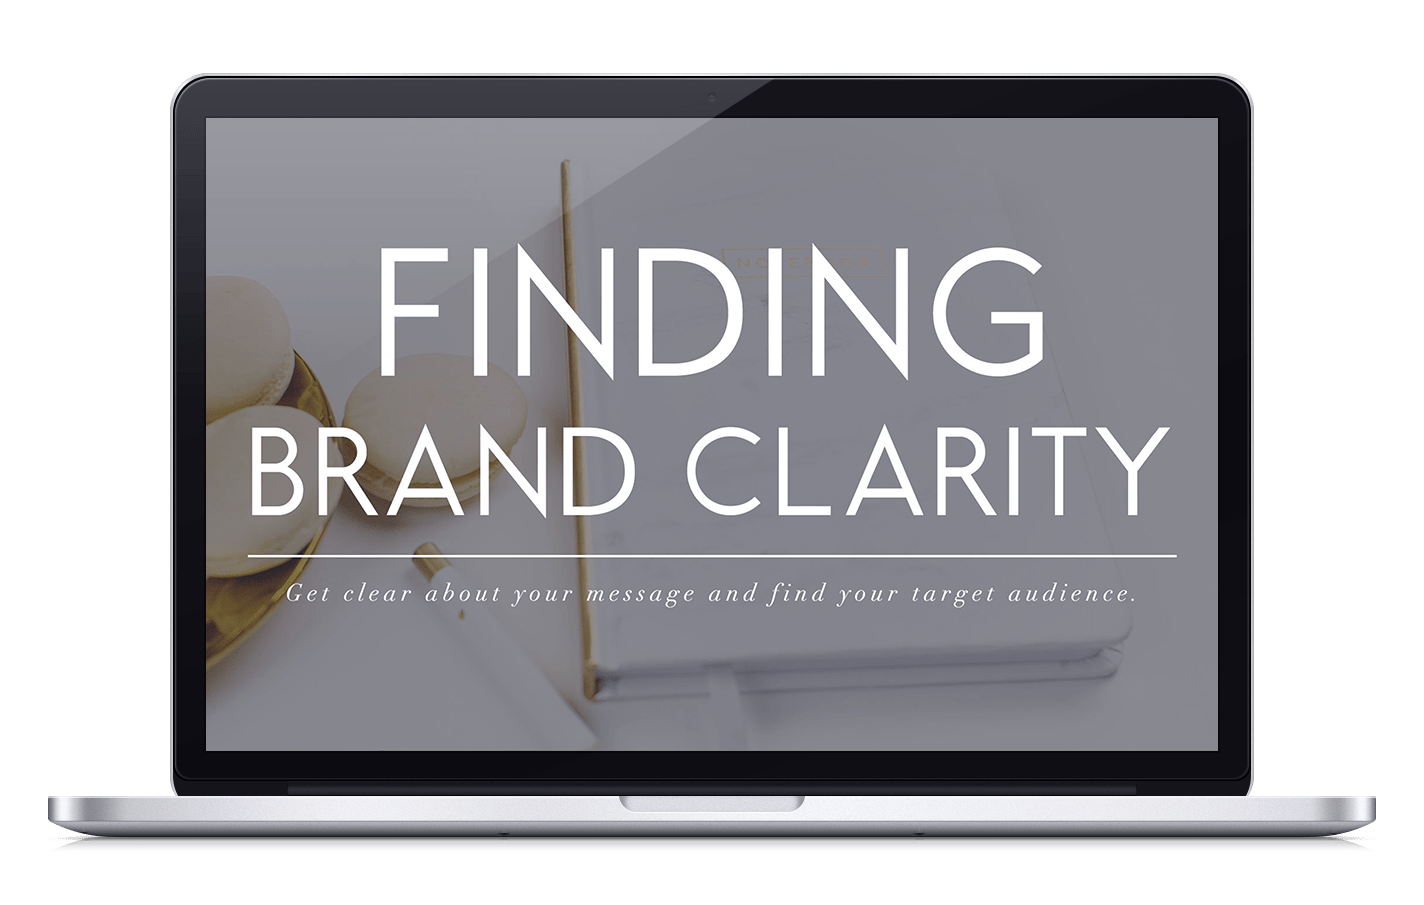 finding-brand-clarity-computer